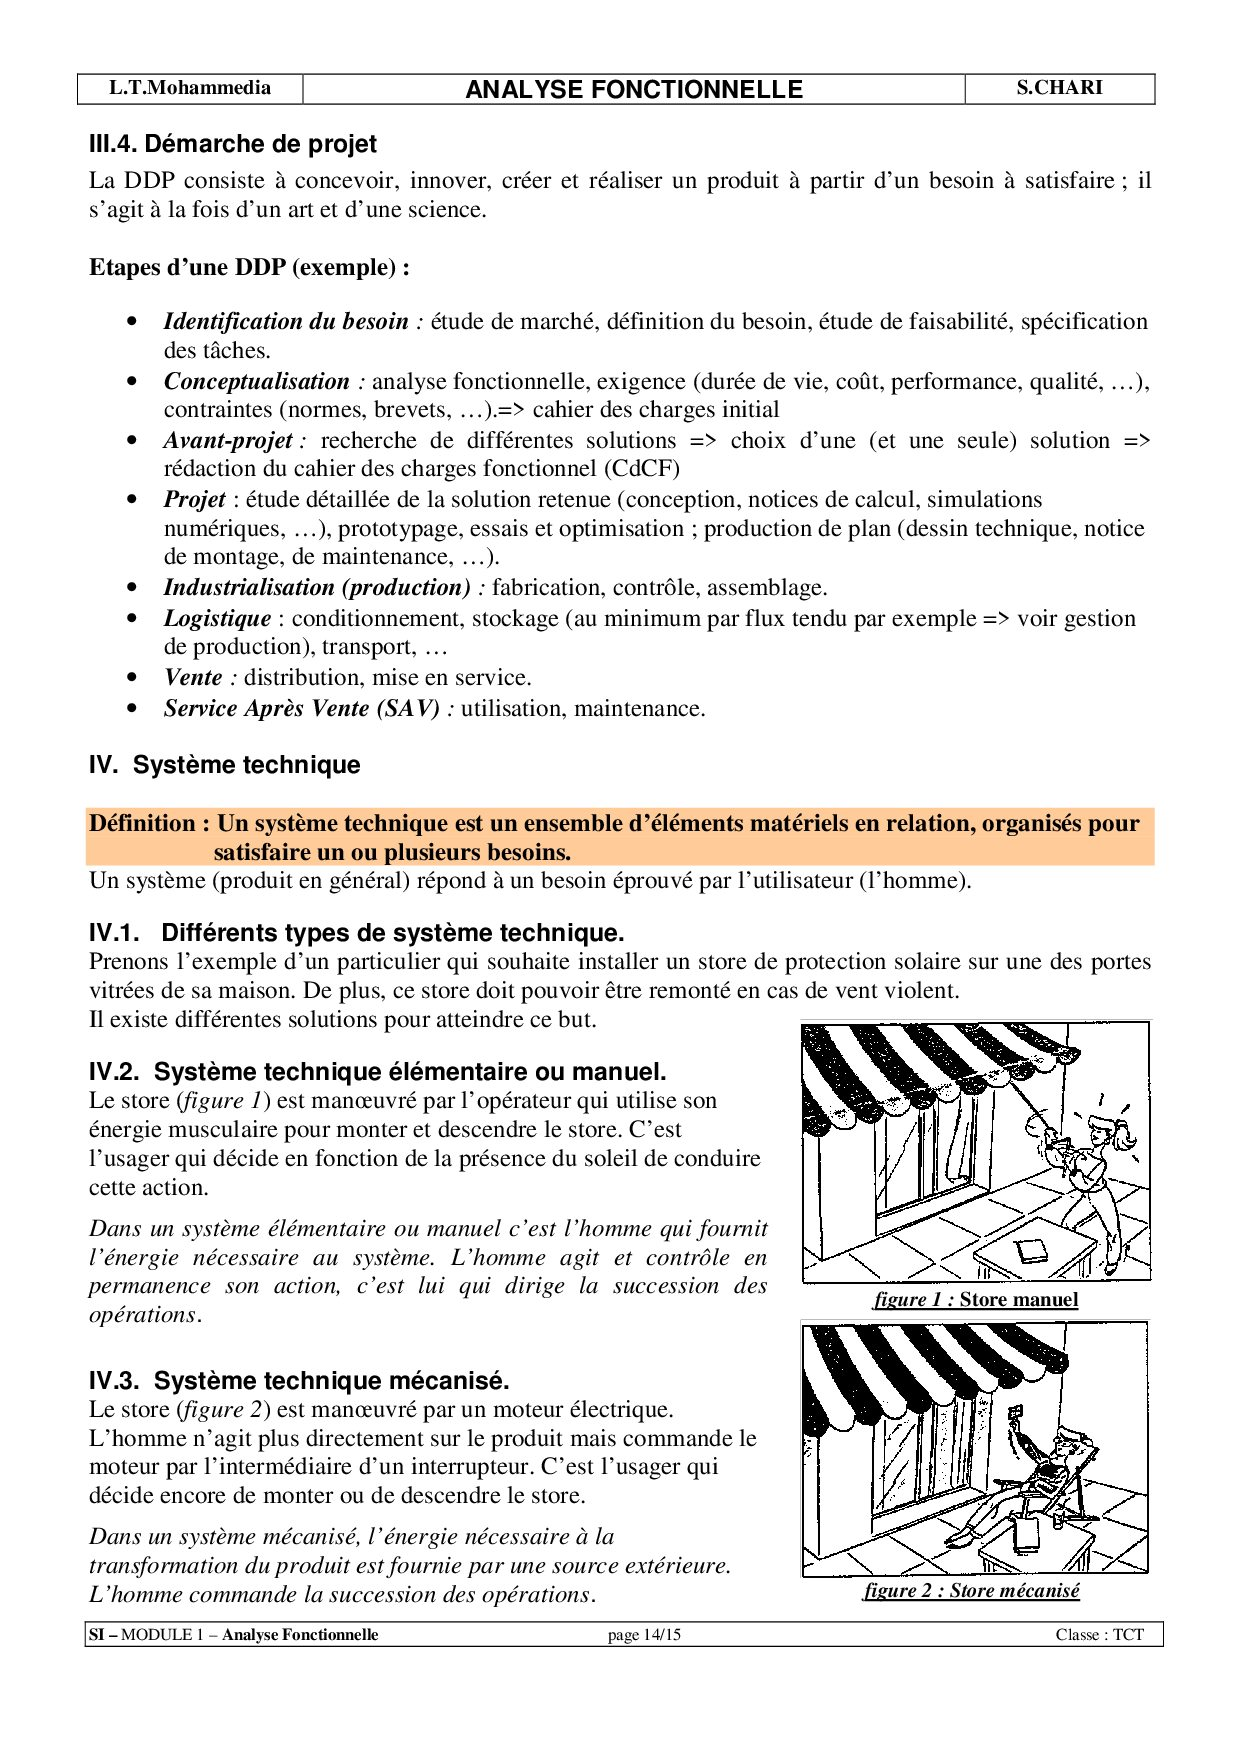 Module 1  Analyse Fonctionnelle  - Cours 1